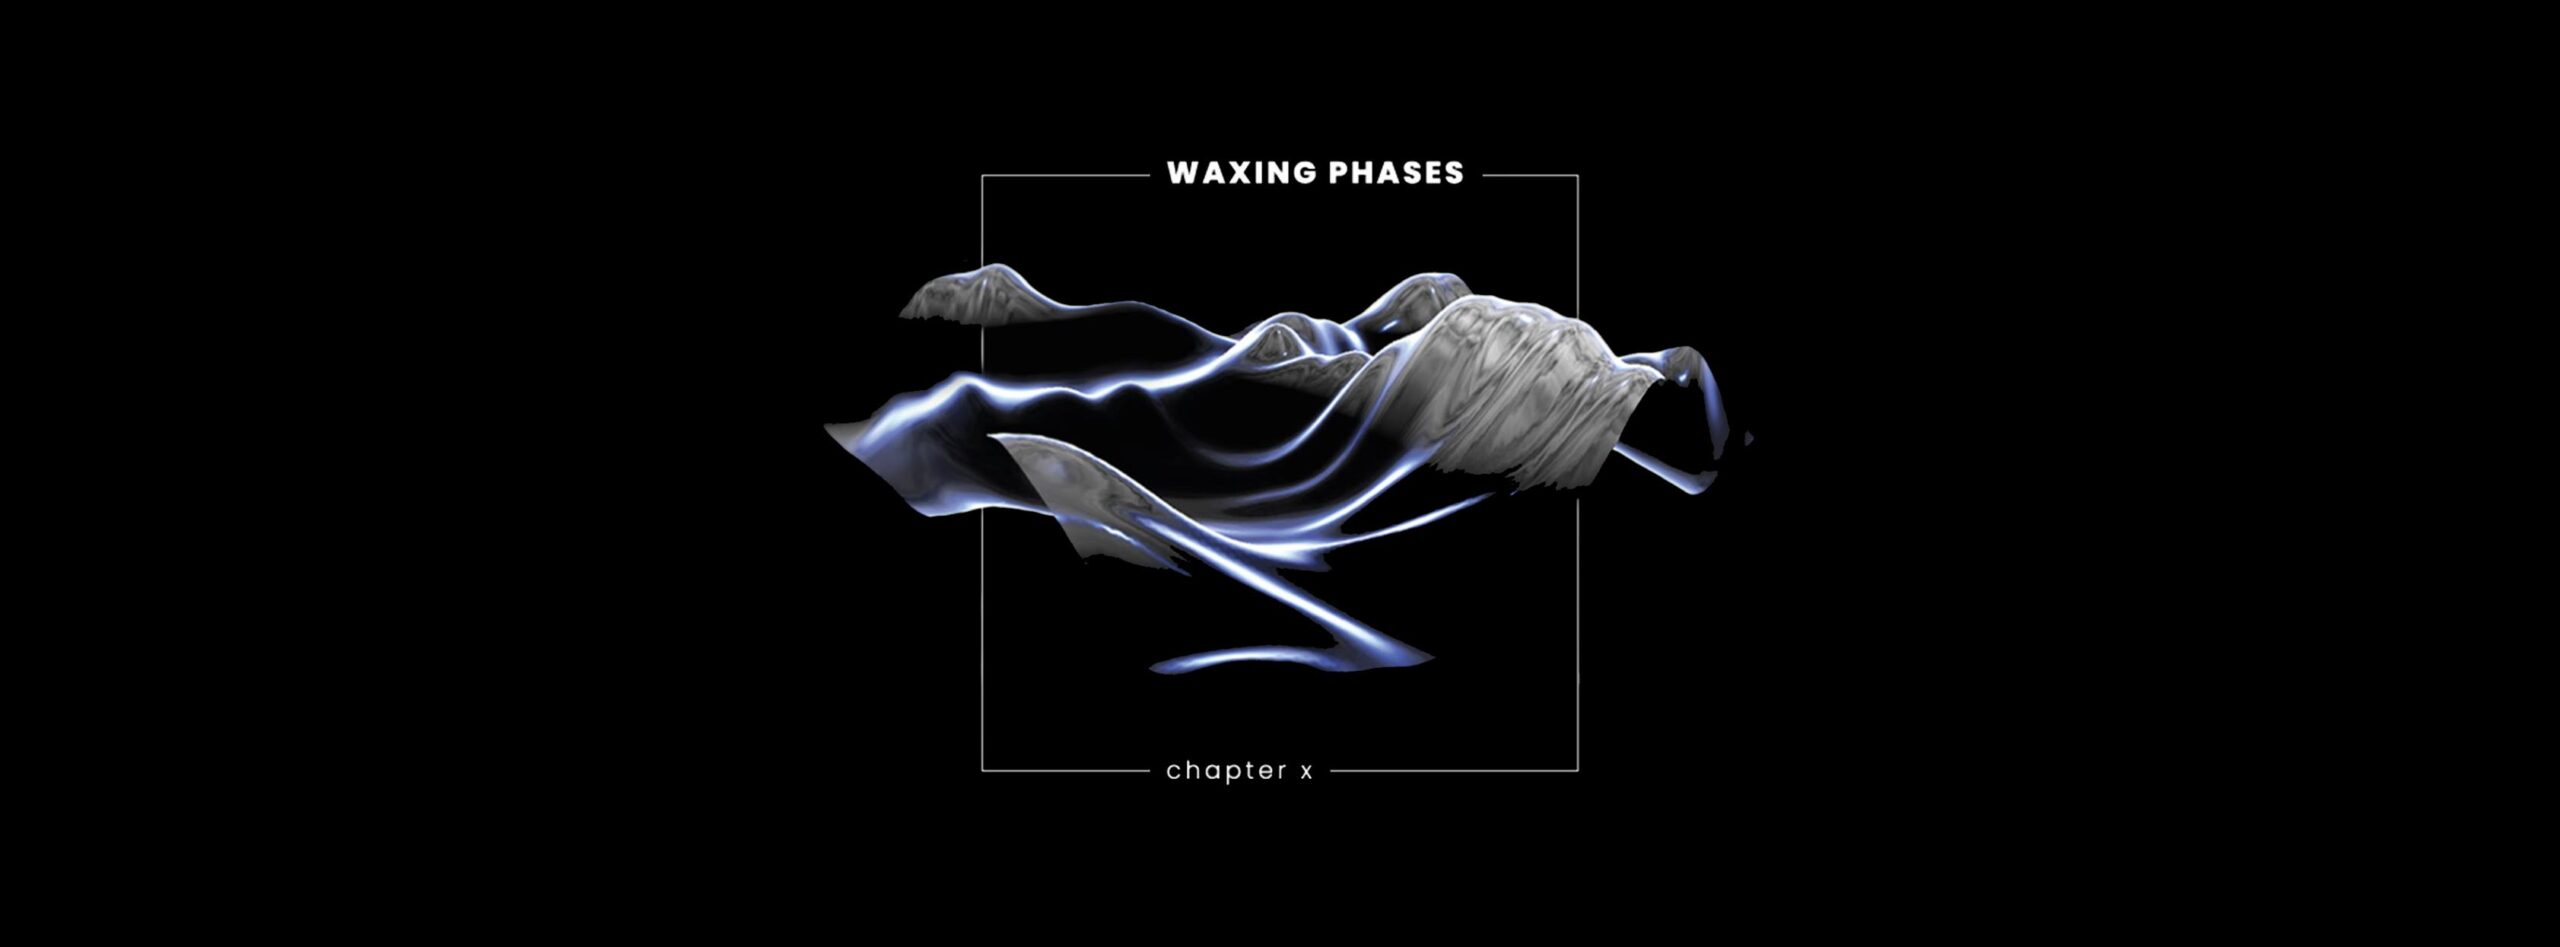 Waxing Phases /chapter X